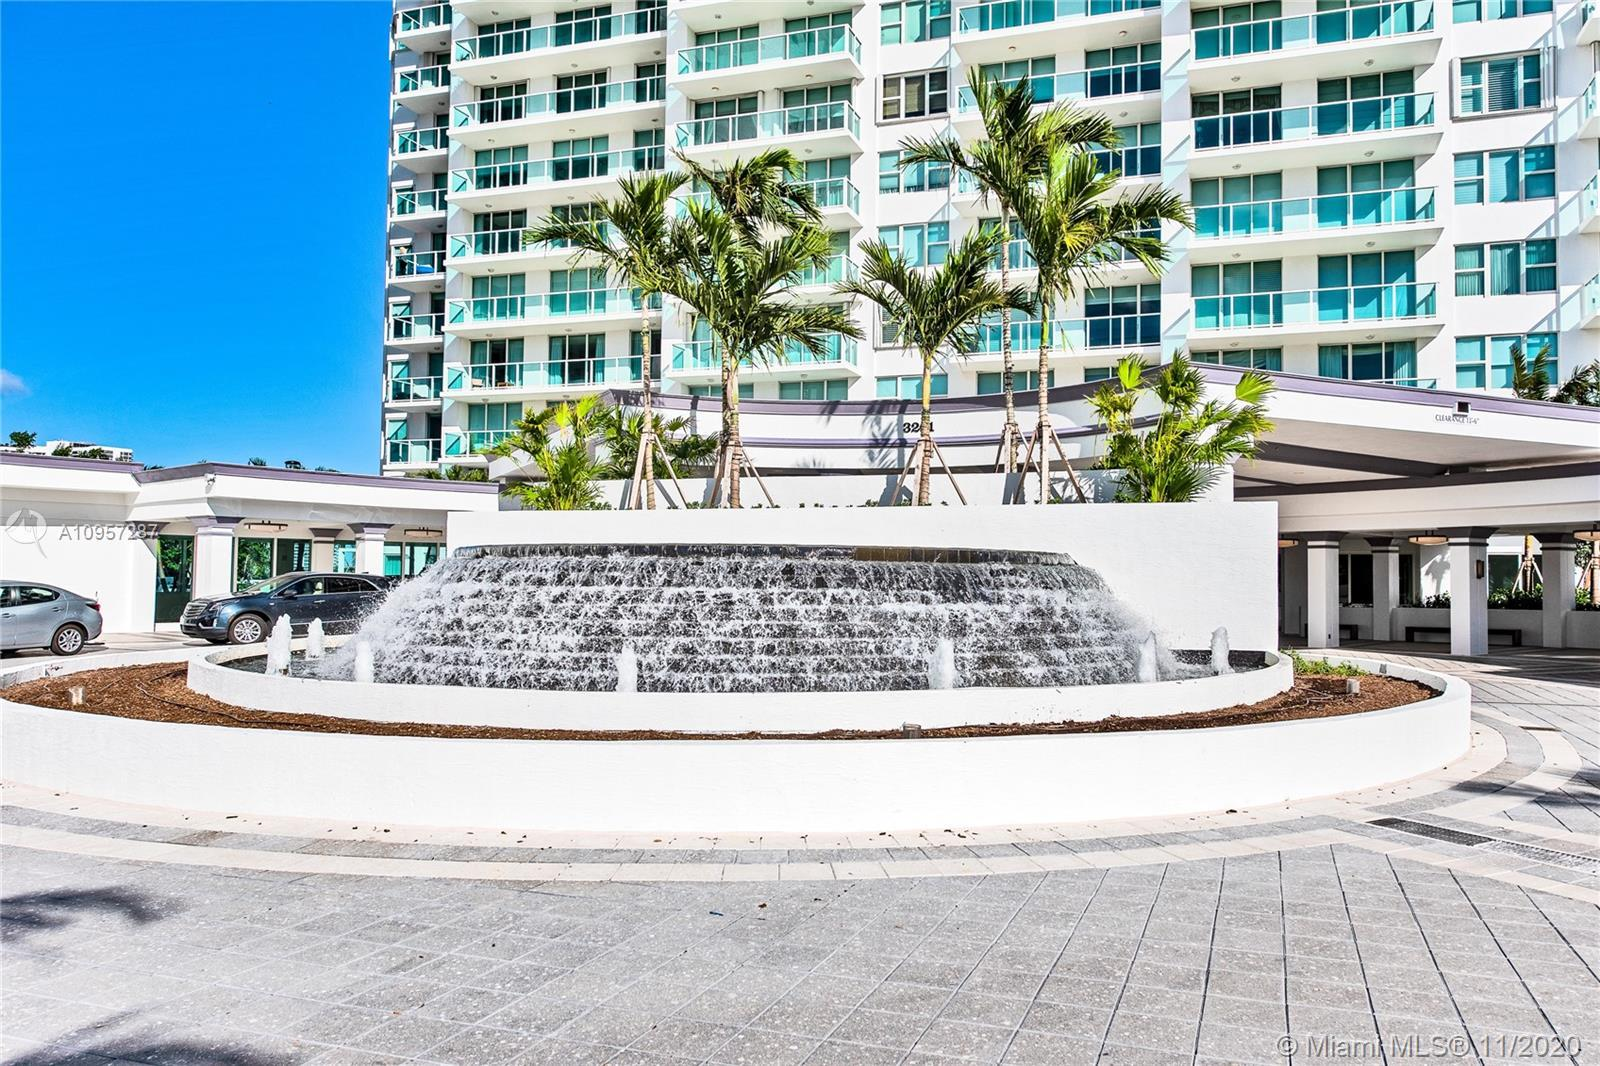 WELCOME HOME, THIS UNIT HAS IT ALL!!! BEAUTIFUL OCEAN & INTRACOASTAL VIEWS FROM BOTH BALCONIES IN TH